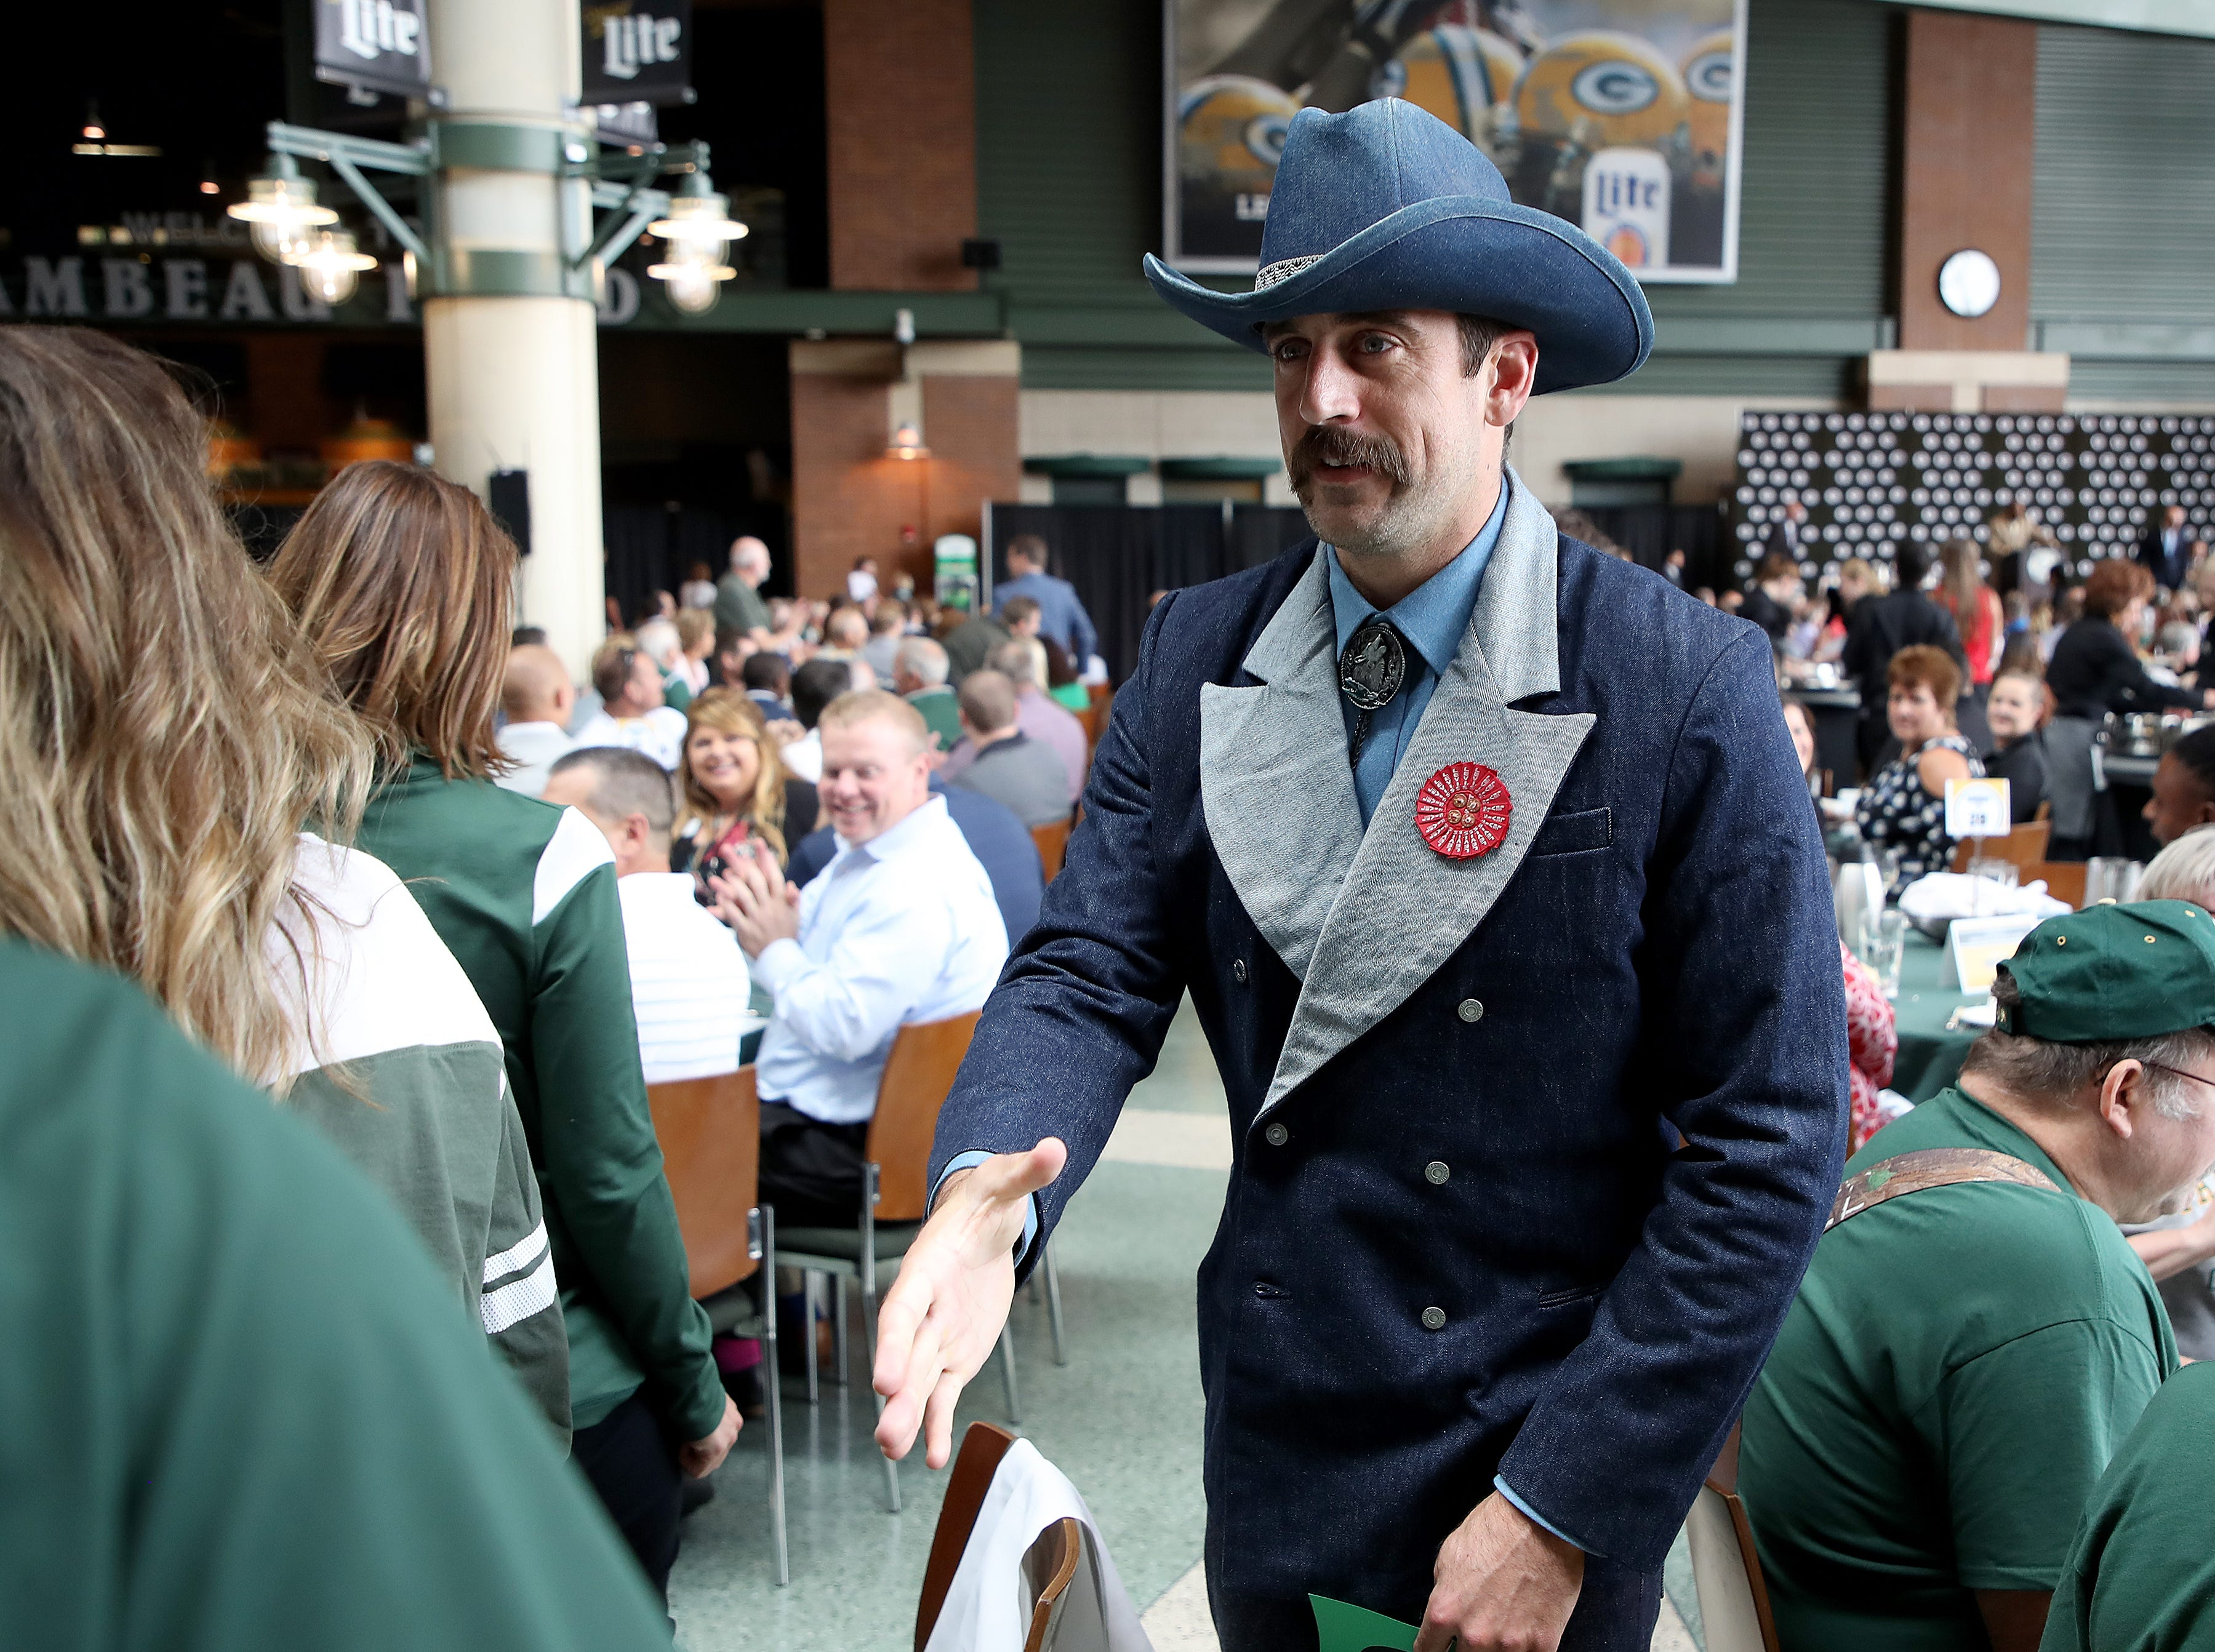 Green Bay Packers quarterback Aaron Rodgers (12) greets people at his table during the Green Bay Chamber of Commerce Welcome Back Packers Luncheon at Lambeau Field Wednesday, August 29, 2018 in Green Bay, Wis.